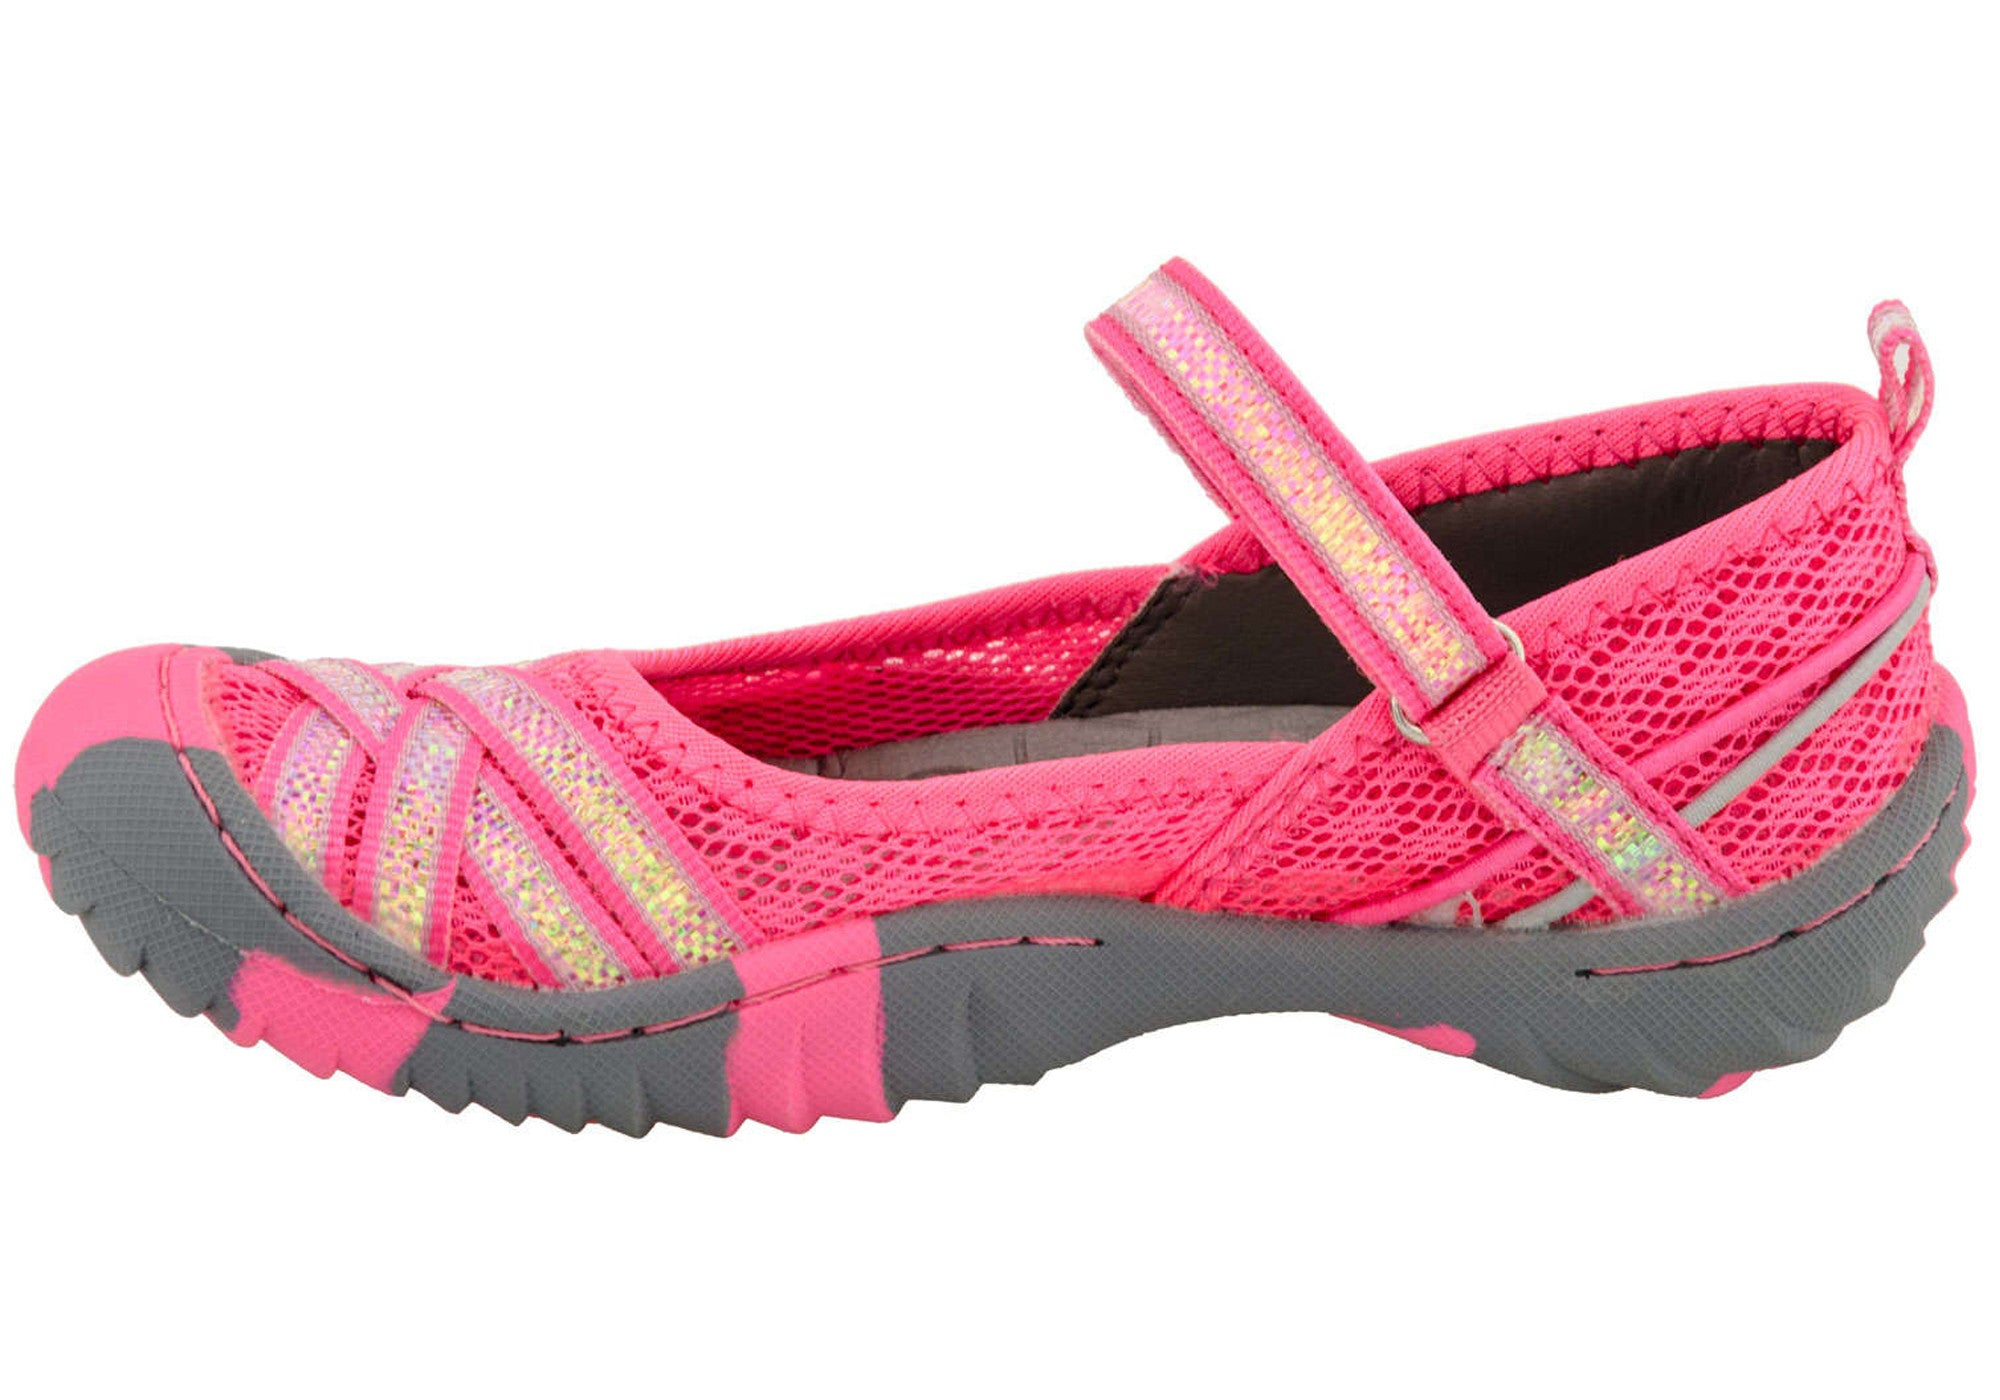 Jambu Boa 3 Kids/Girls Comfortable Mary Jane Shoes